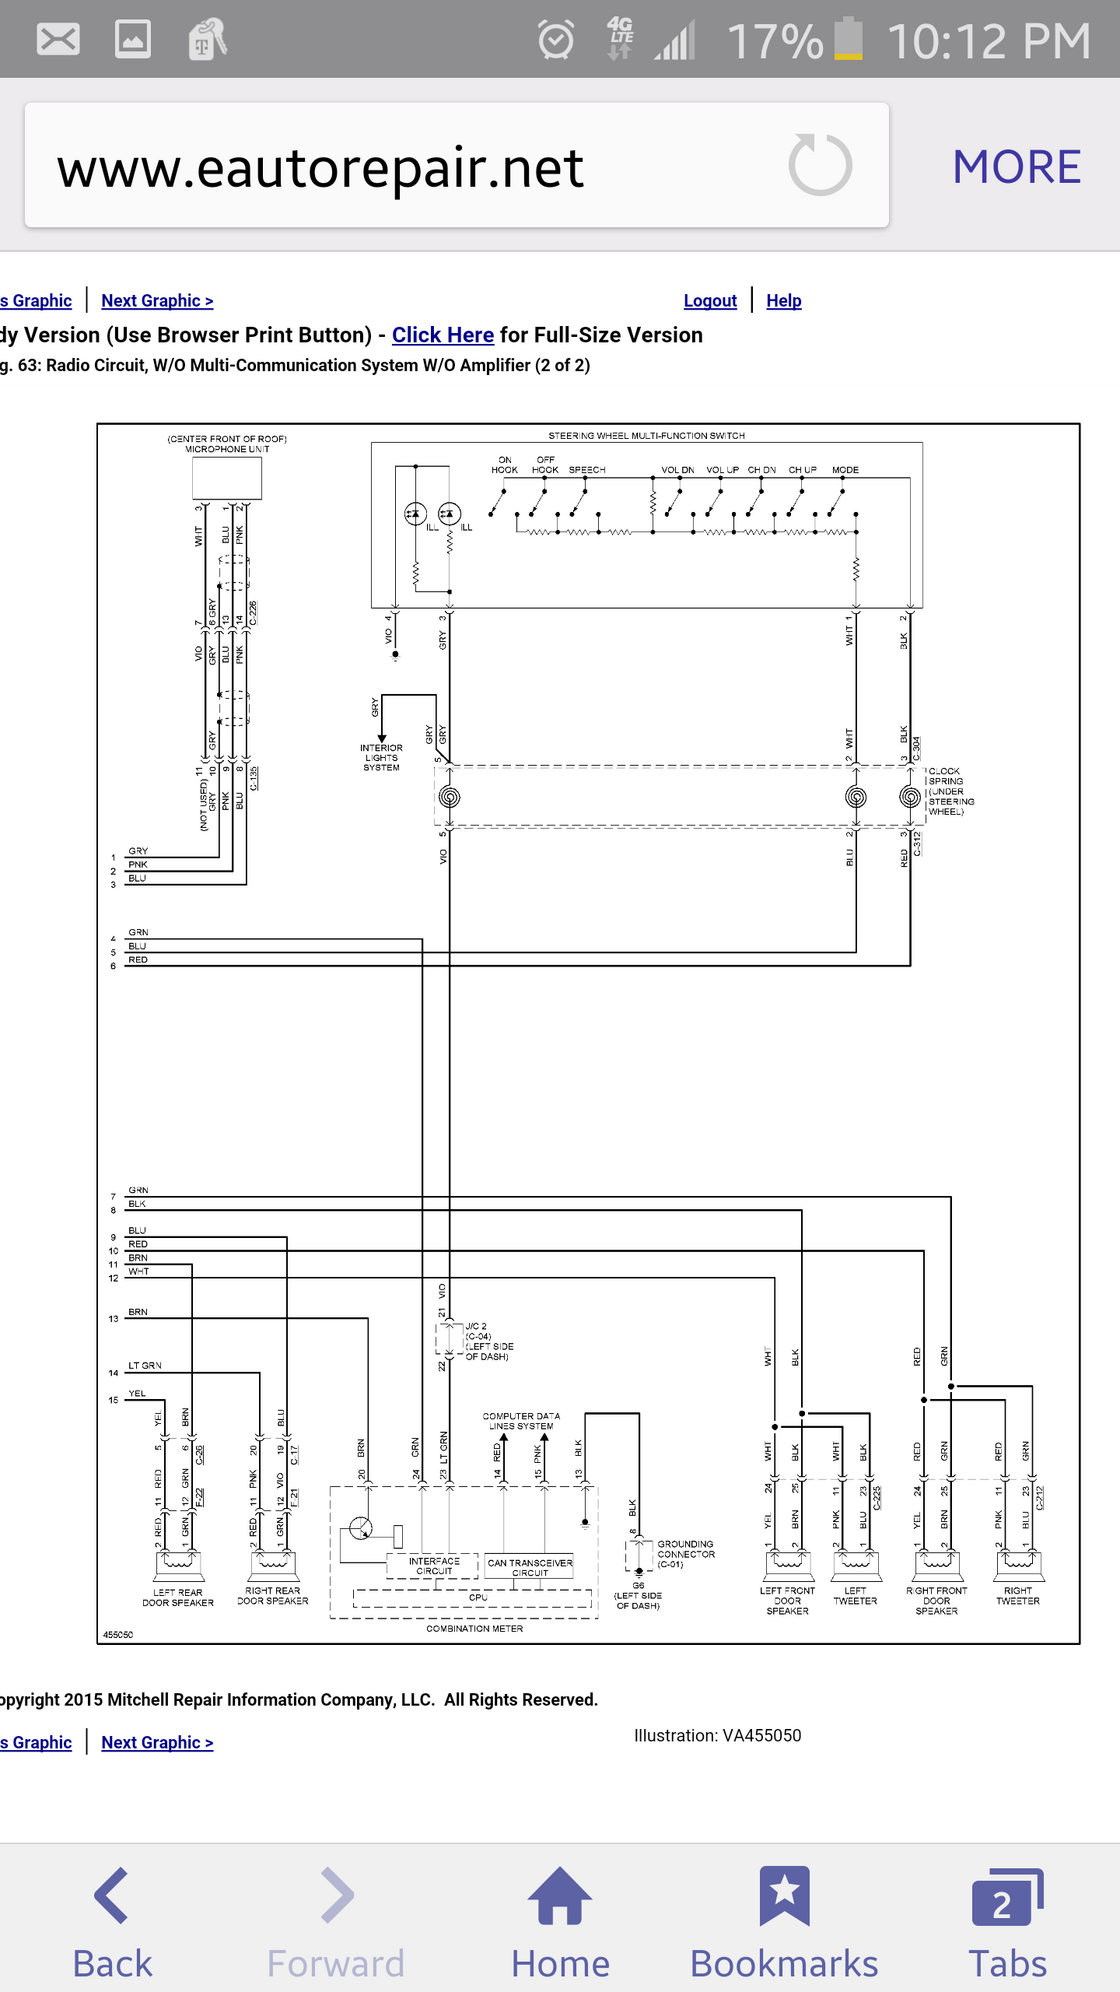 80 screenshot_2015_05_23_22_12_49_55c1943f65c7c105ae98e6703cd64127b6585656 mitsubishi outlander wiring diagram 28 images outlander new on 2003 mitsubishi outlander wiring diagram